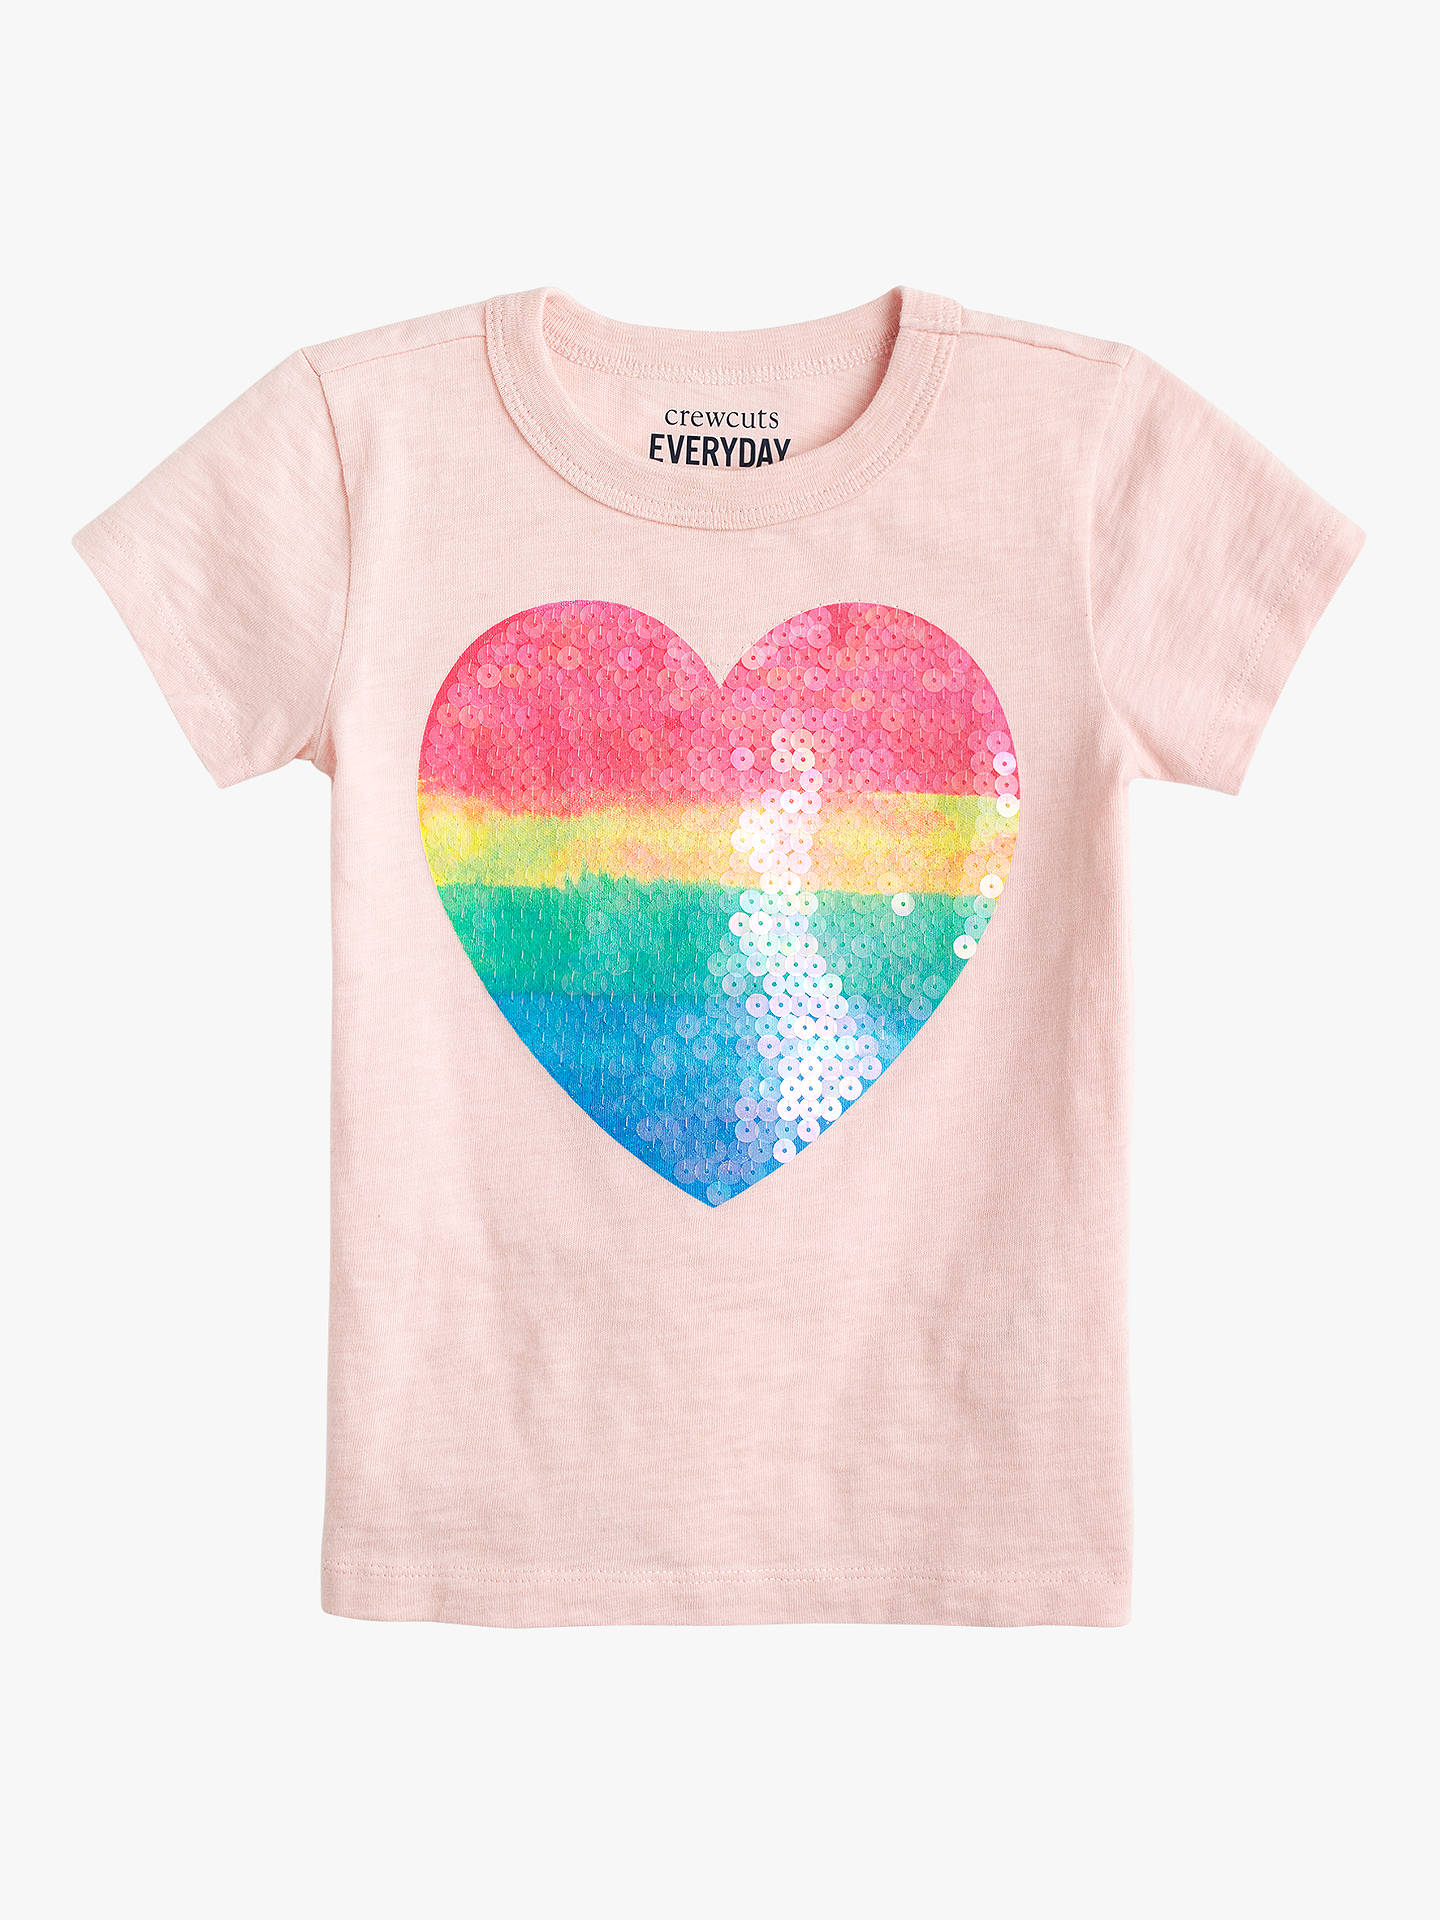 34aaf89e252 crewcuts by J.Crew Girls' Sequin Heart T-Shirt, Sunwashed Pink at ...